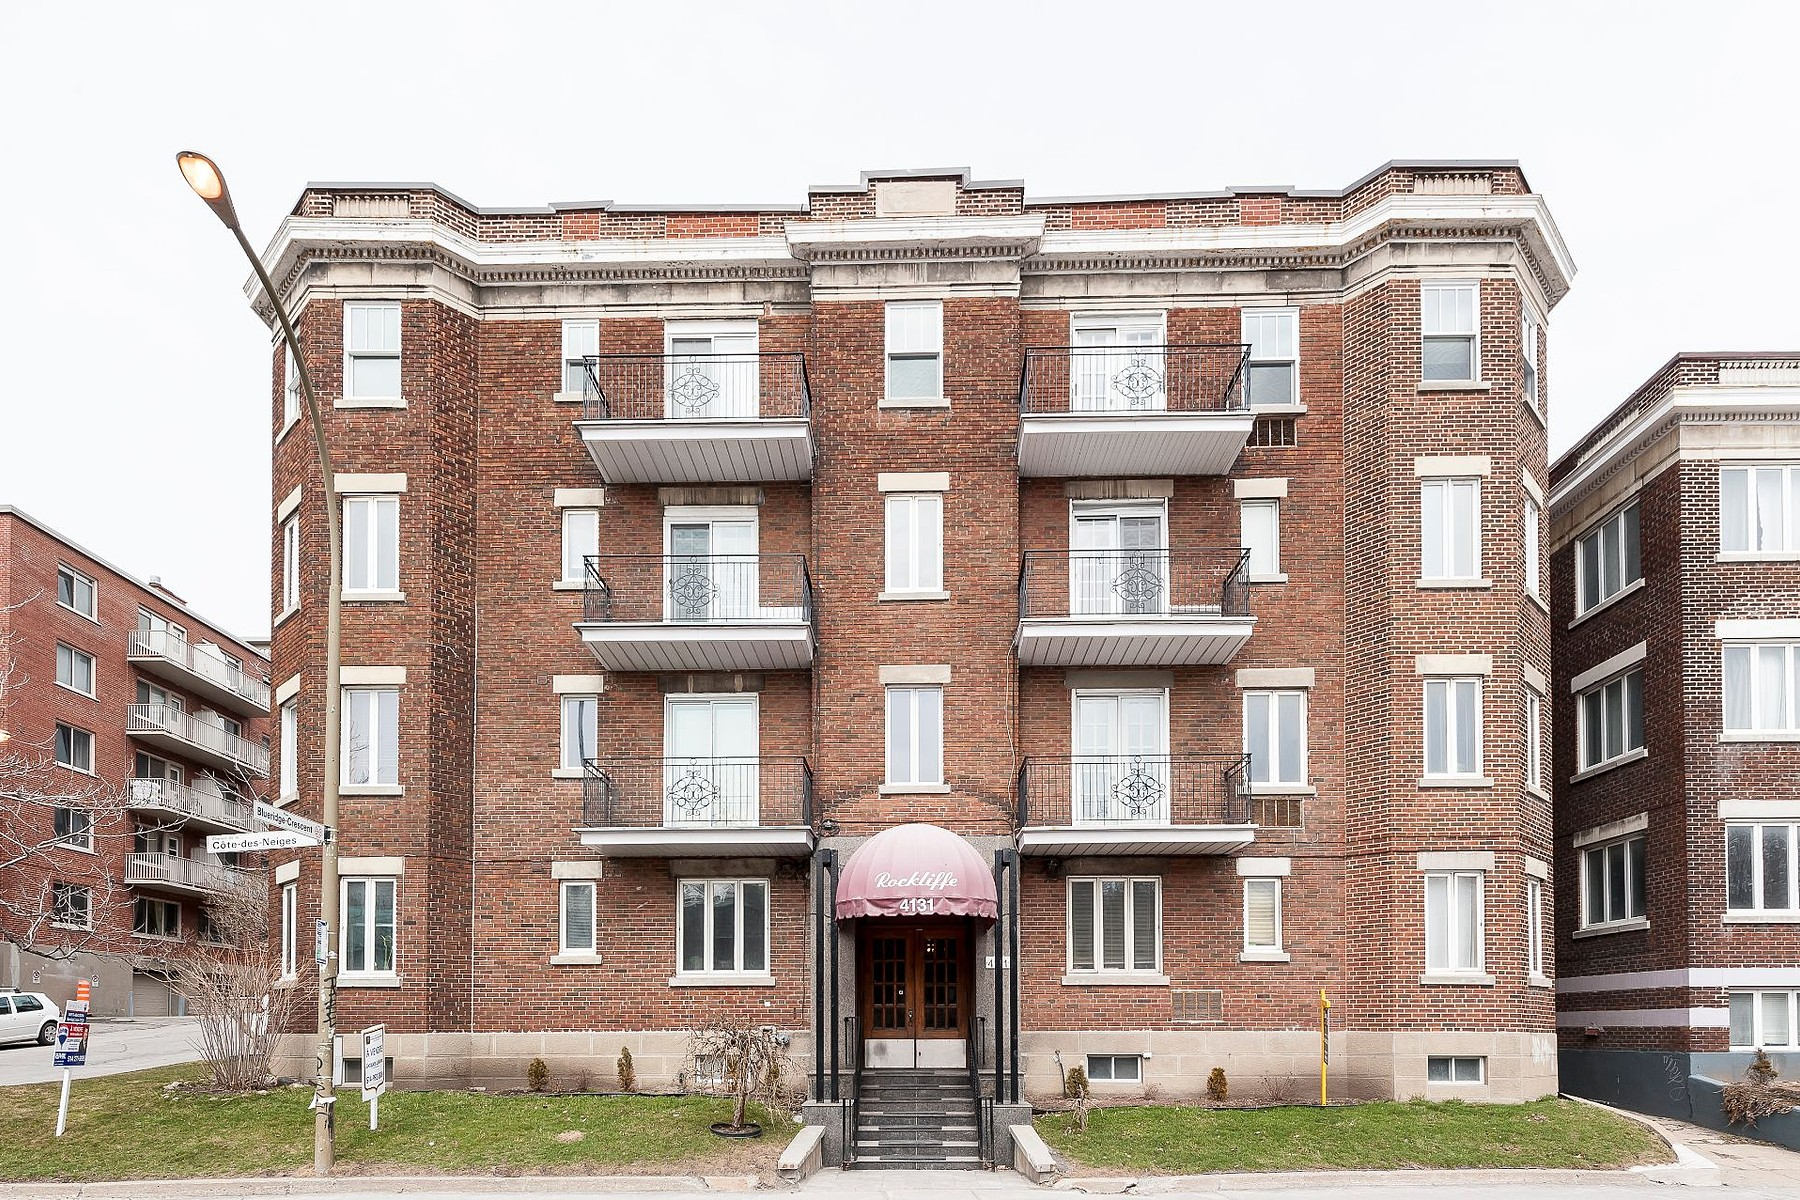 Additional photo for property listing at Ville-Marie, Montréal 4131 Ch. de la Côte-des-Neiges, Apt. 4 Ville-Marie, 魁北克省 H3H1X1 加拿大